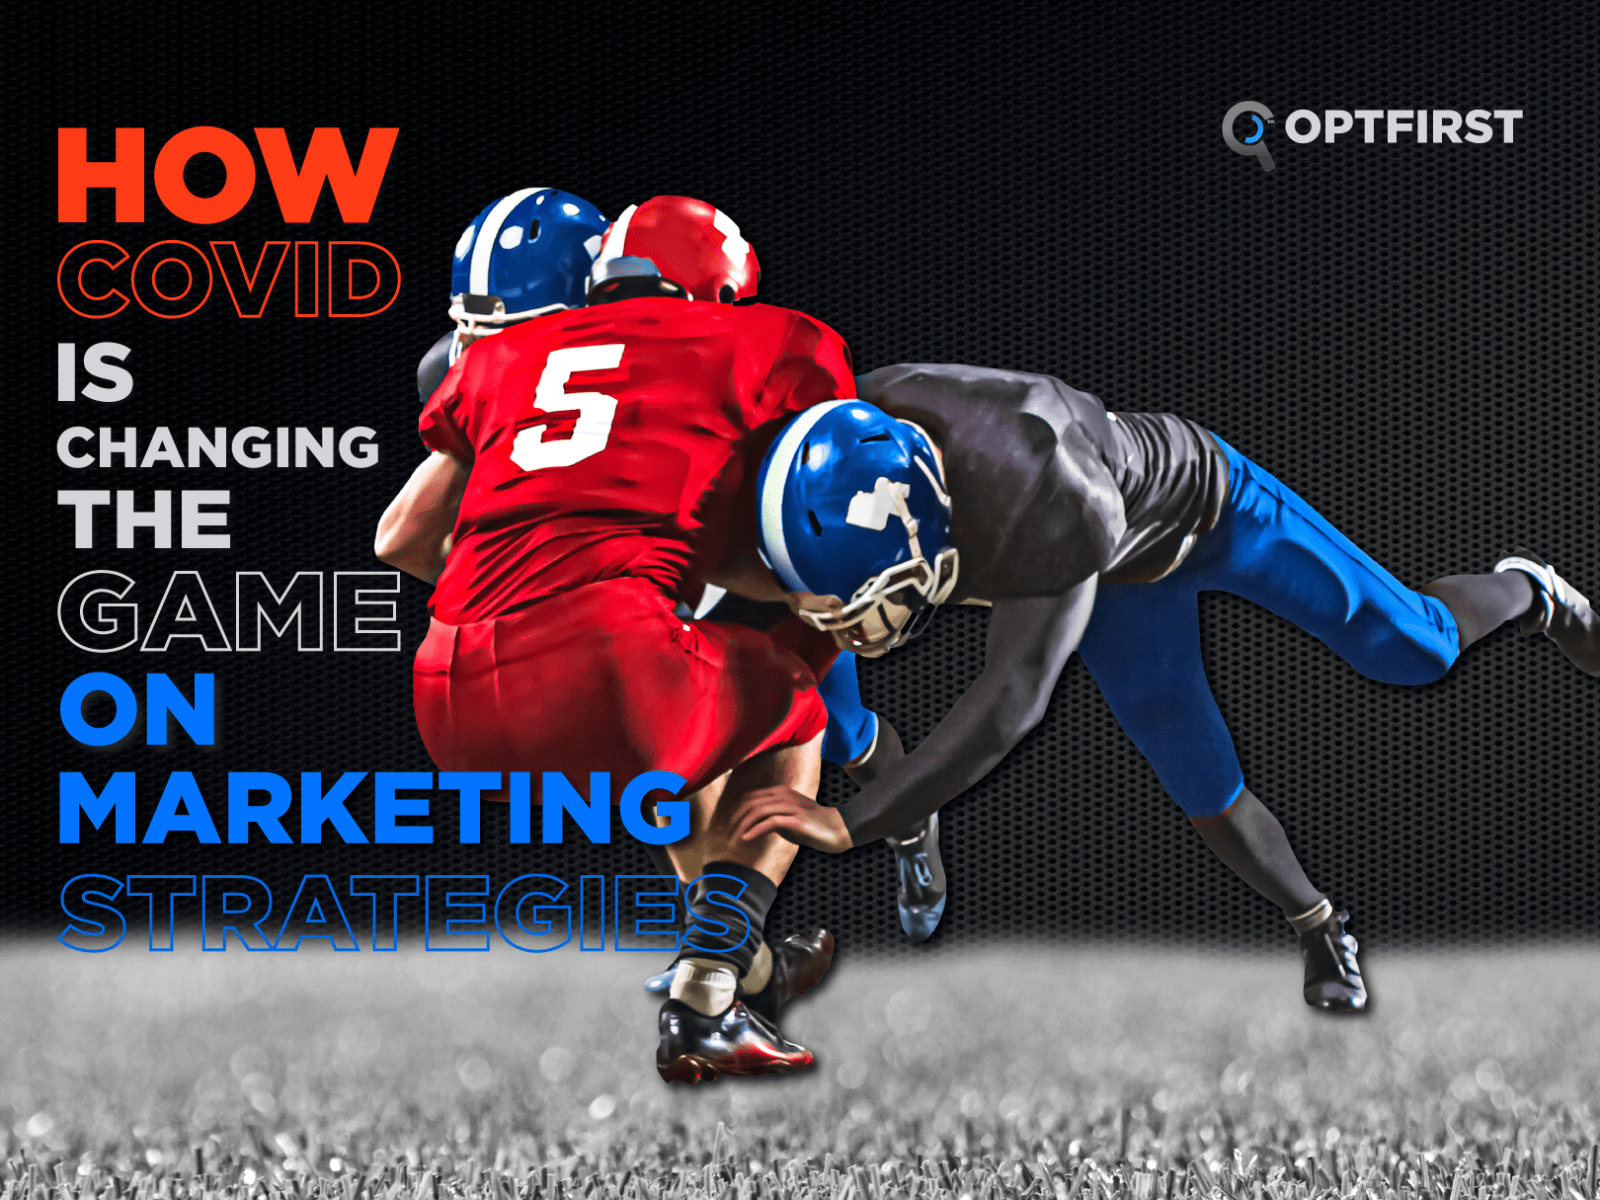 How COVID-19 is Changing the Game on Marketing Strategies